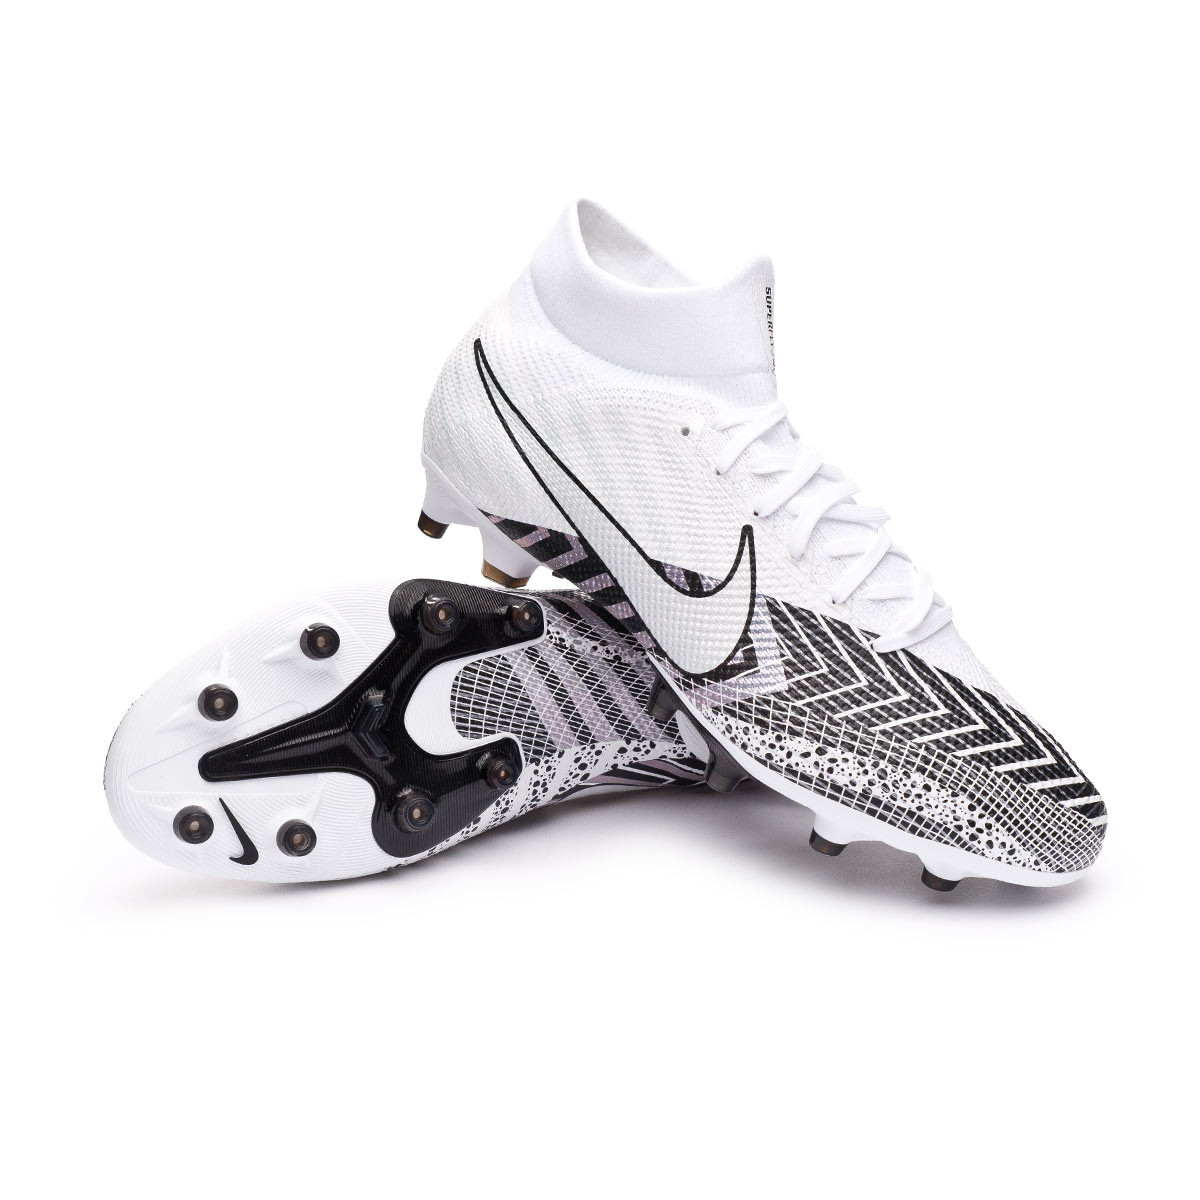 Componer Estereotipo Aislar  Football Boots Nike Mercurial Superfly VII Pro MDS AG-PRO White-Black -  Football store Fútbol Emotion